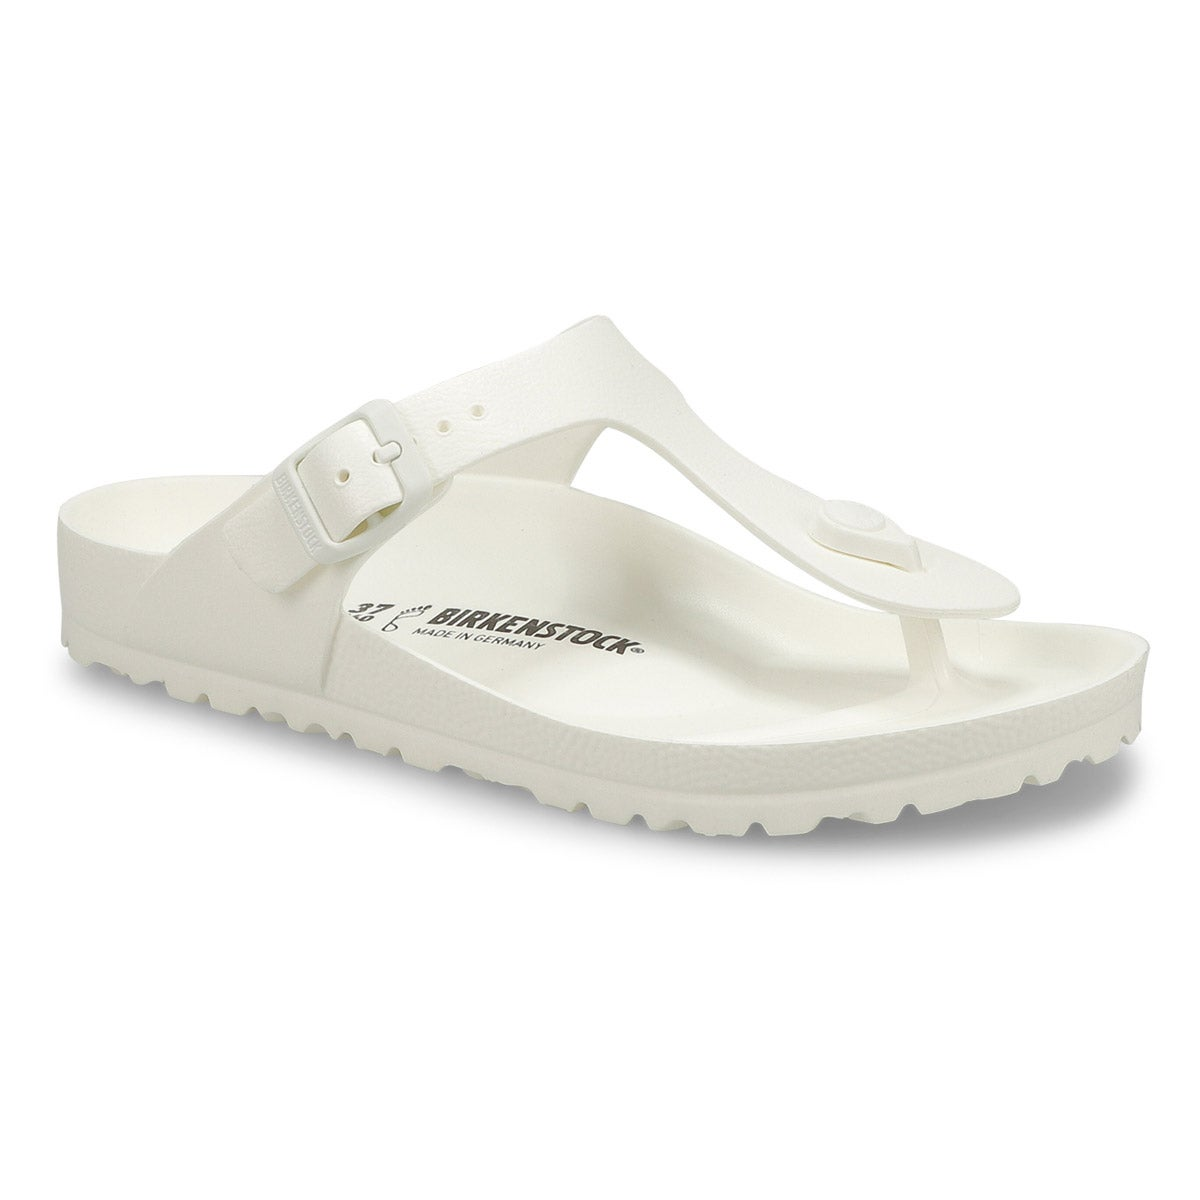 eb9633247c4 Birkenstock Women s GIZEH white thong sandals